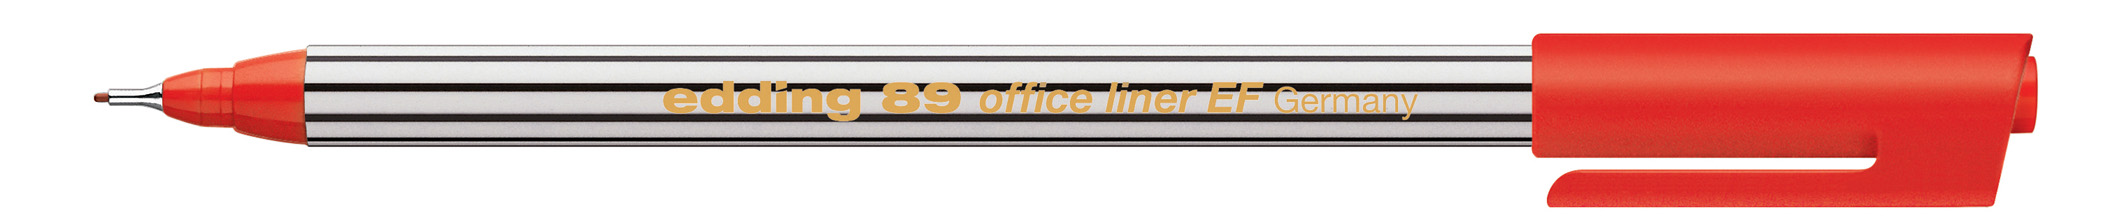 89 office liner EF - 0,3 mm, rot